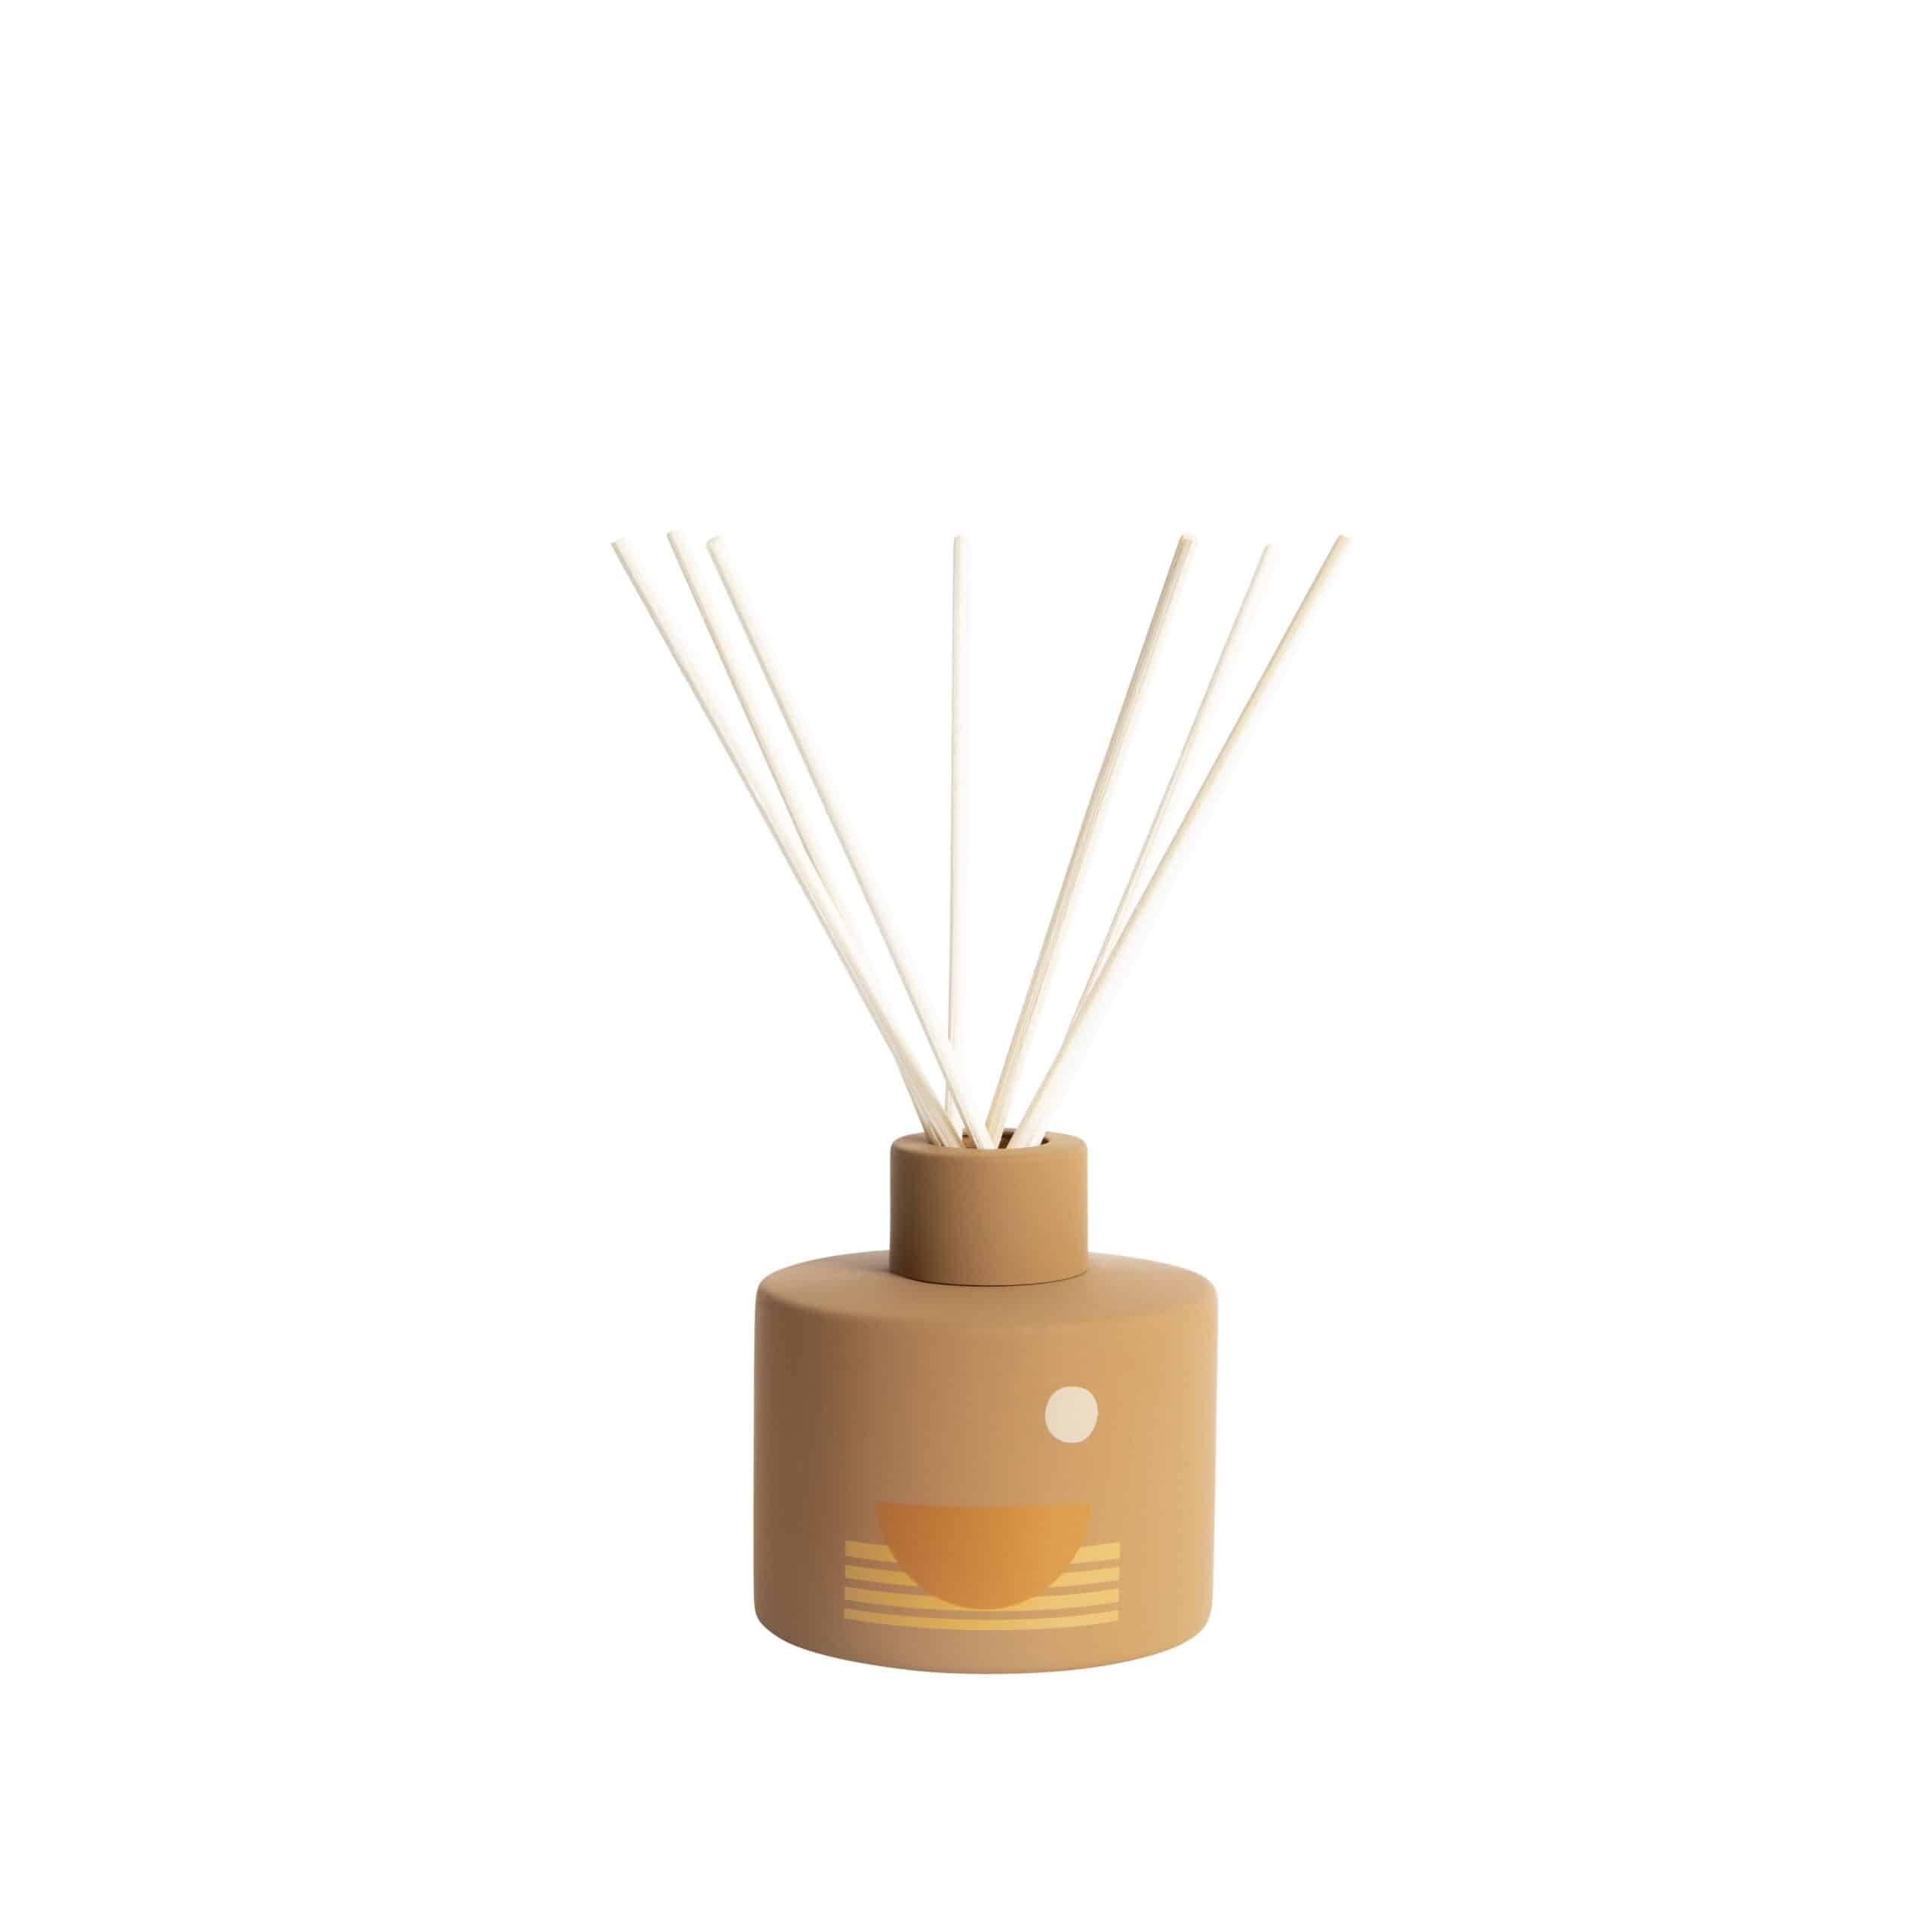 Swell – 3.75 oz Sunset Reed Diffuser